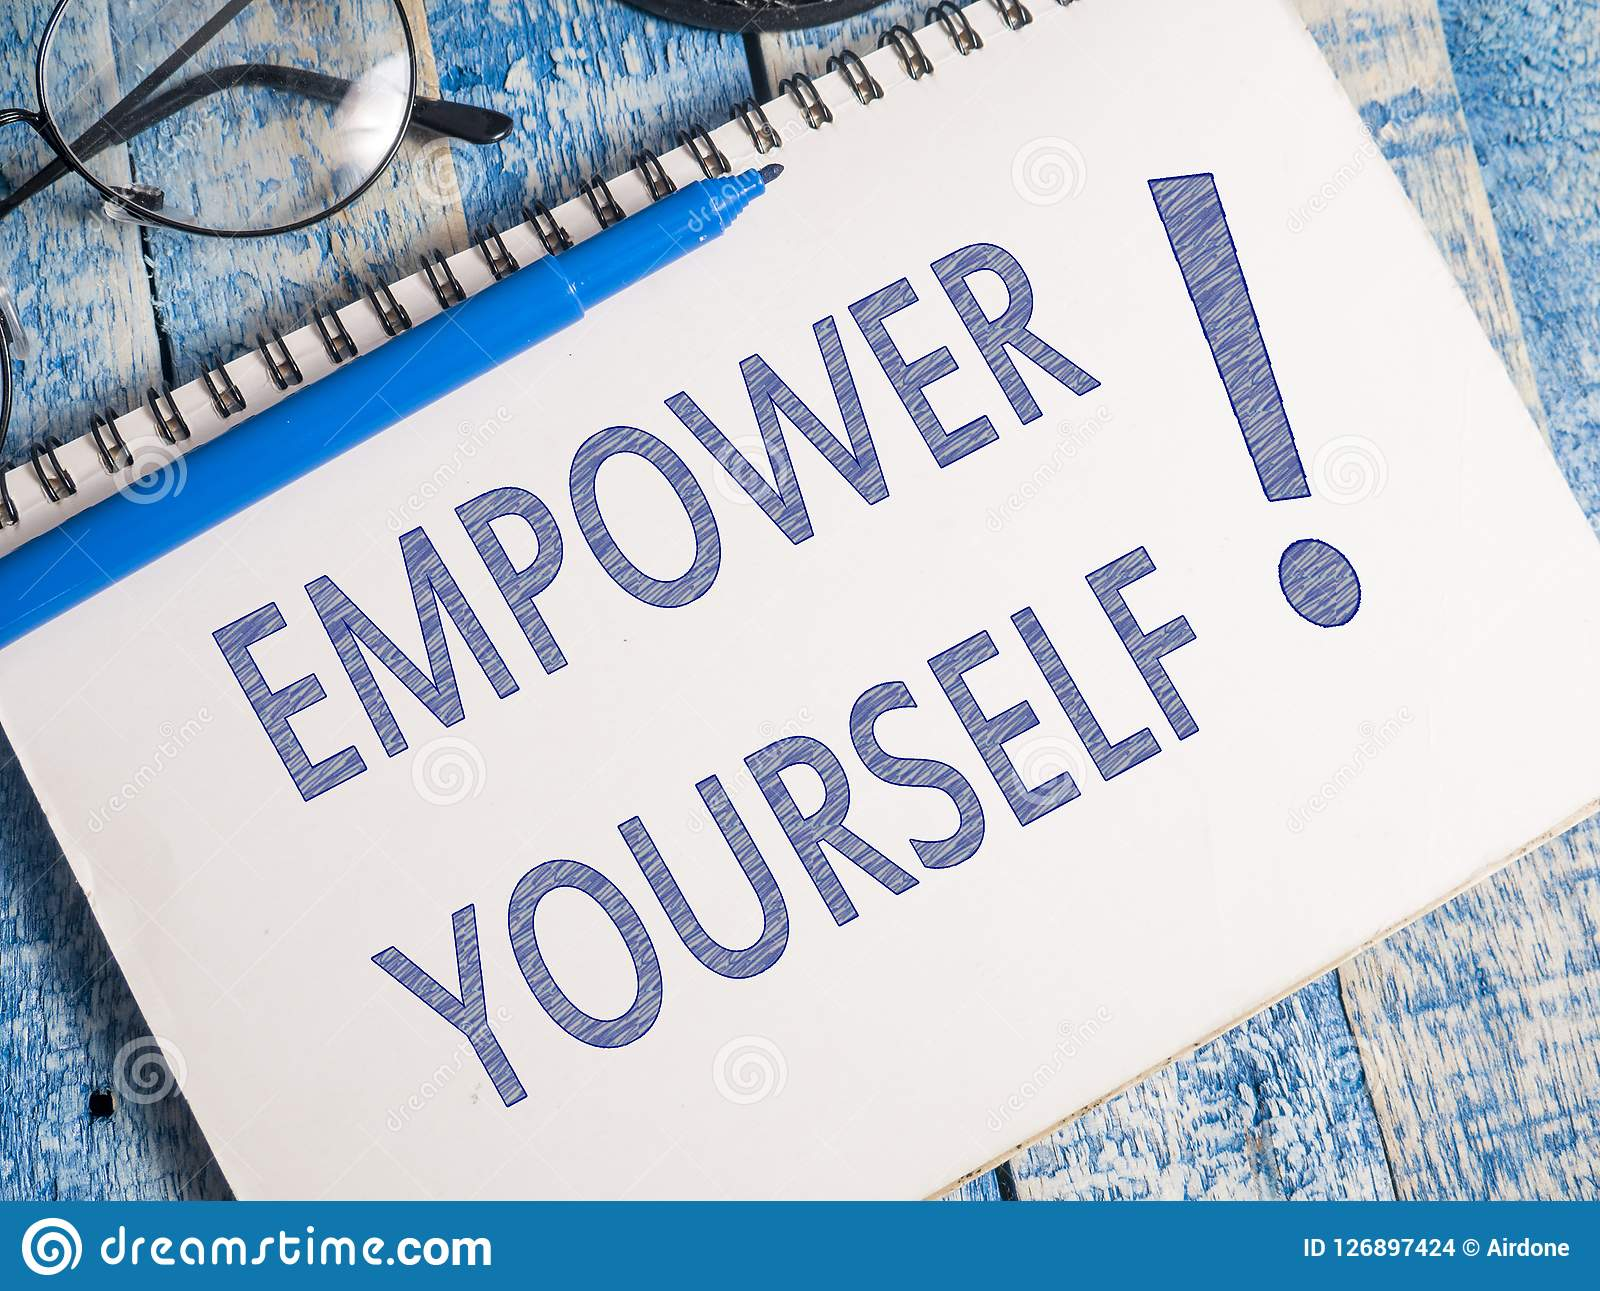 Empower Yourself Motivational Business Words Quotes Concept Stock